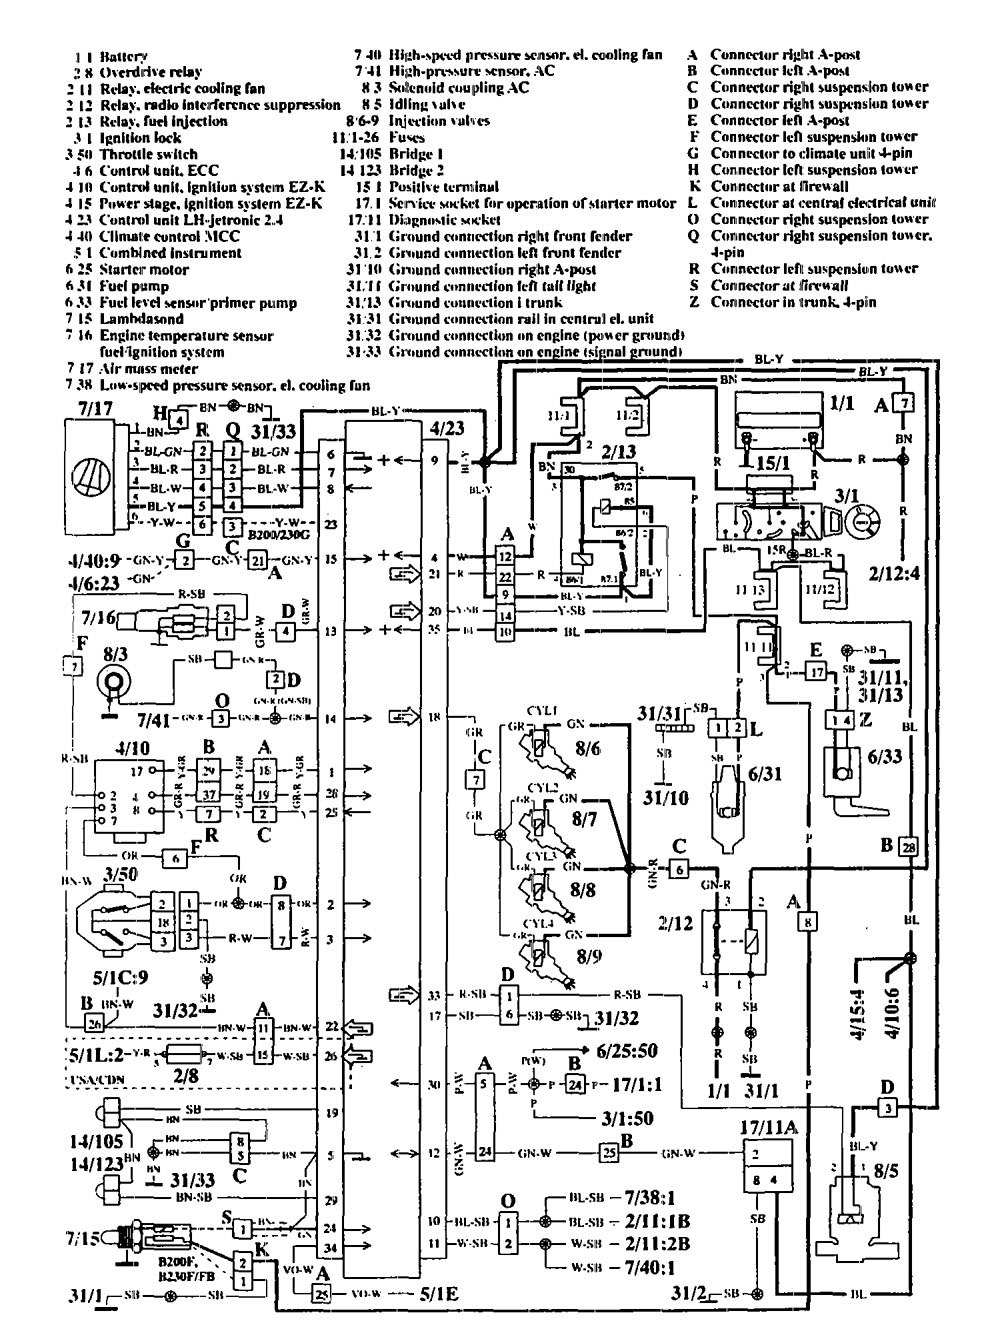 volvo 940 wiring diagram fuel controls v2 1 1992 volvo 940 (1992) wiring diagrams fuel controls carknowledge 1996 volvo 940 wiring diagram at bakdesigns.co